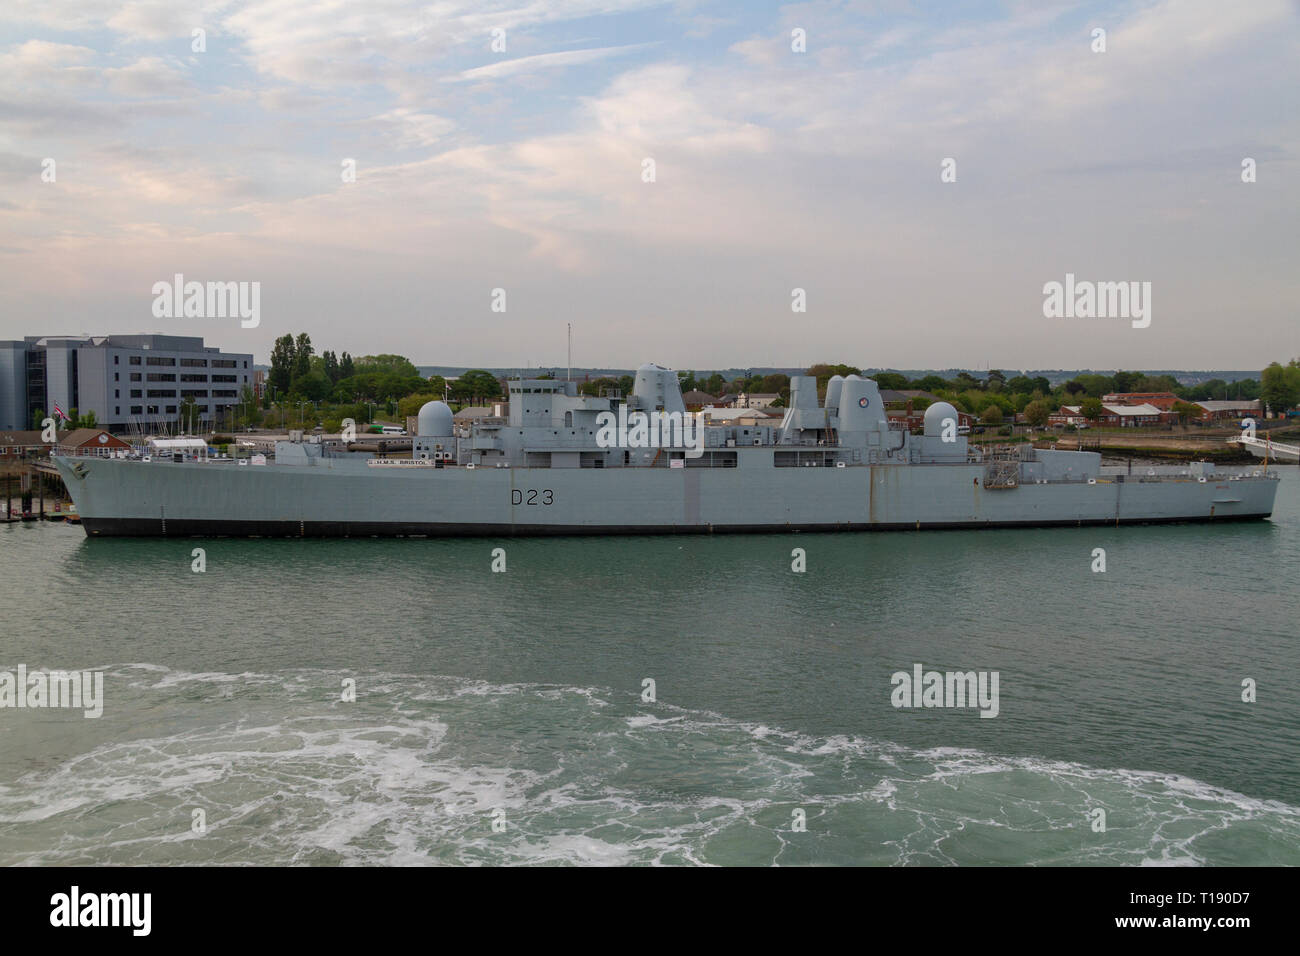 The HMS Bristol (D23) is a Type 82 destroyer, moored in the Royal Navy Dockyard, Portsmouth, UK. - Stock Image